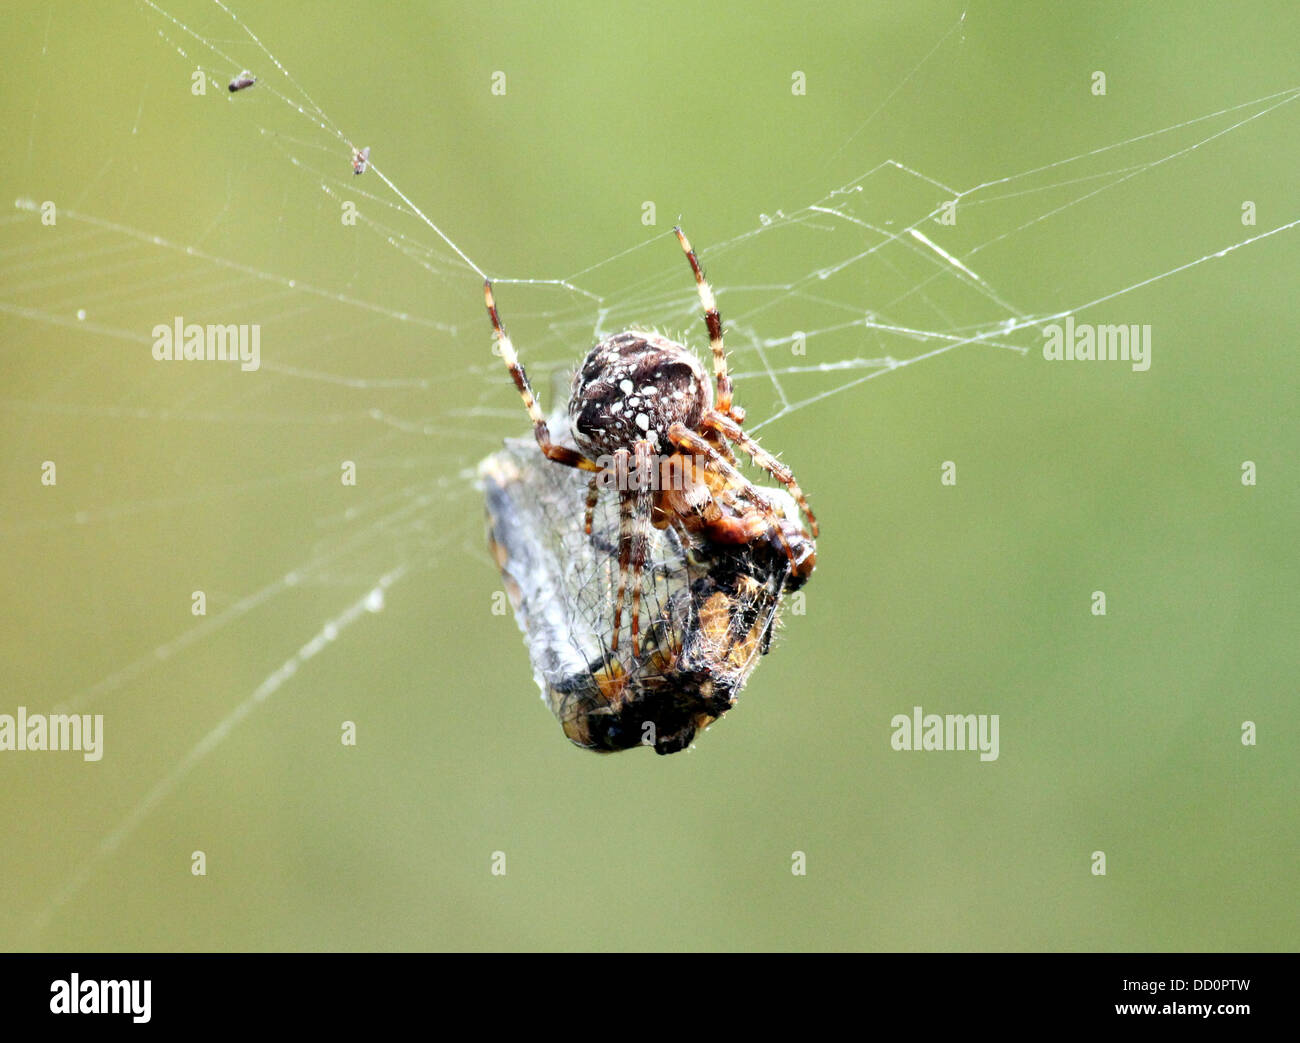 Close-up of a female European garden spider (Araneus diadematus) in her web with a prey she caught - Stock Image